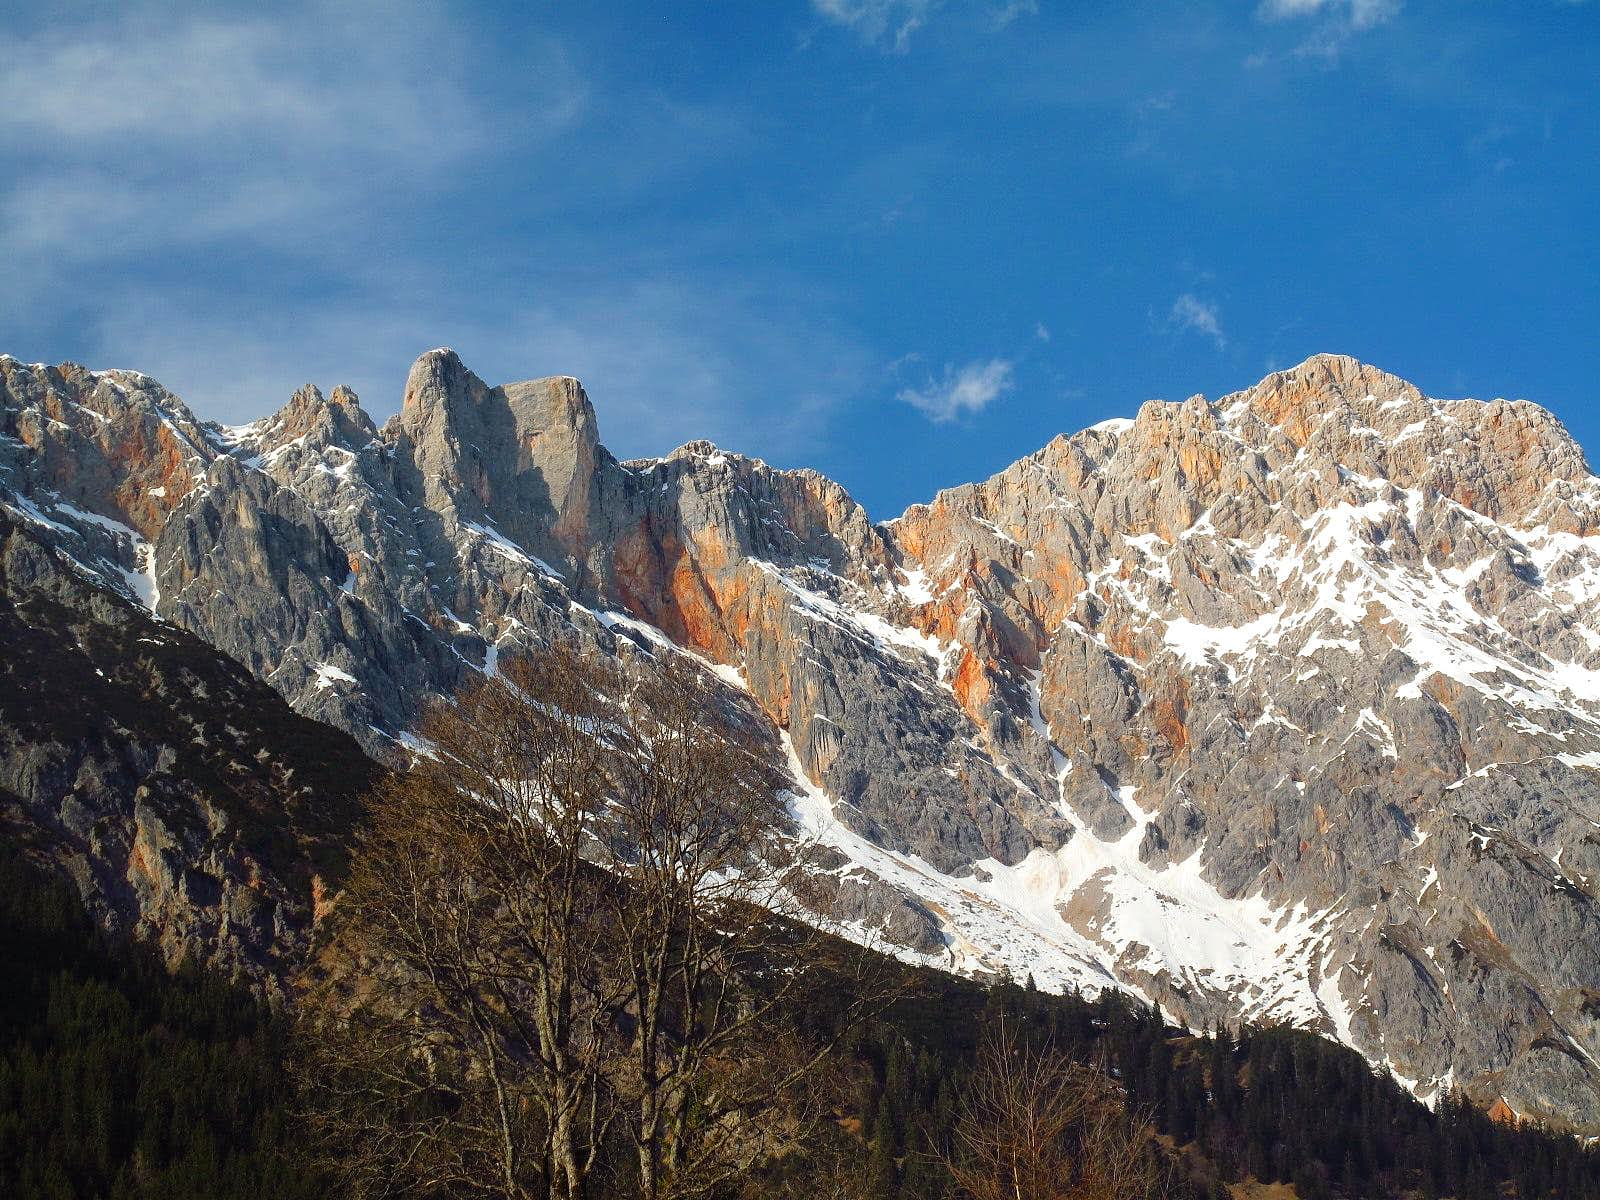 The southern tip of the Berchtesgaden Alps in early April